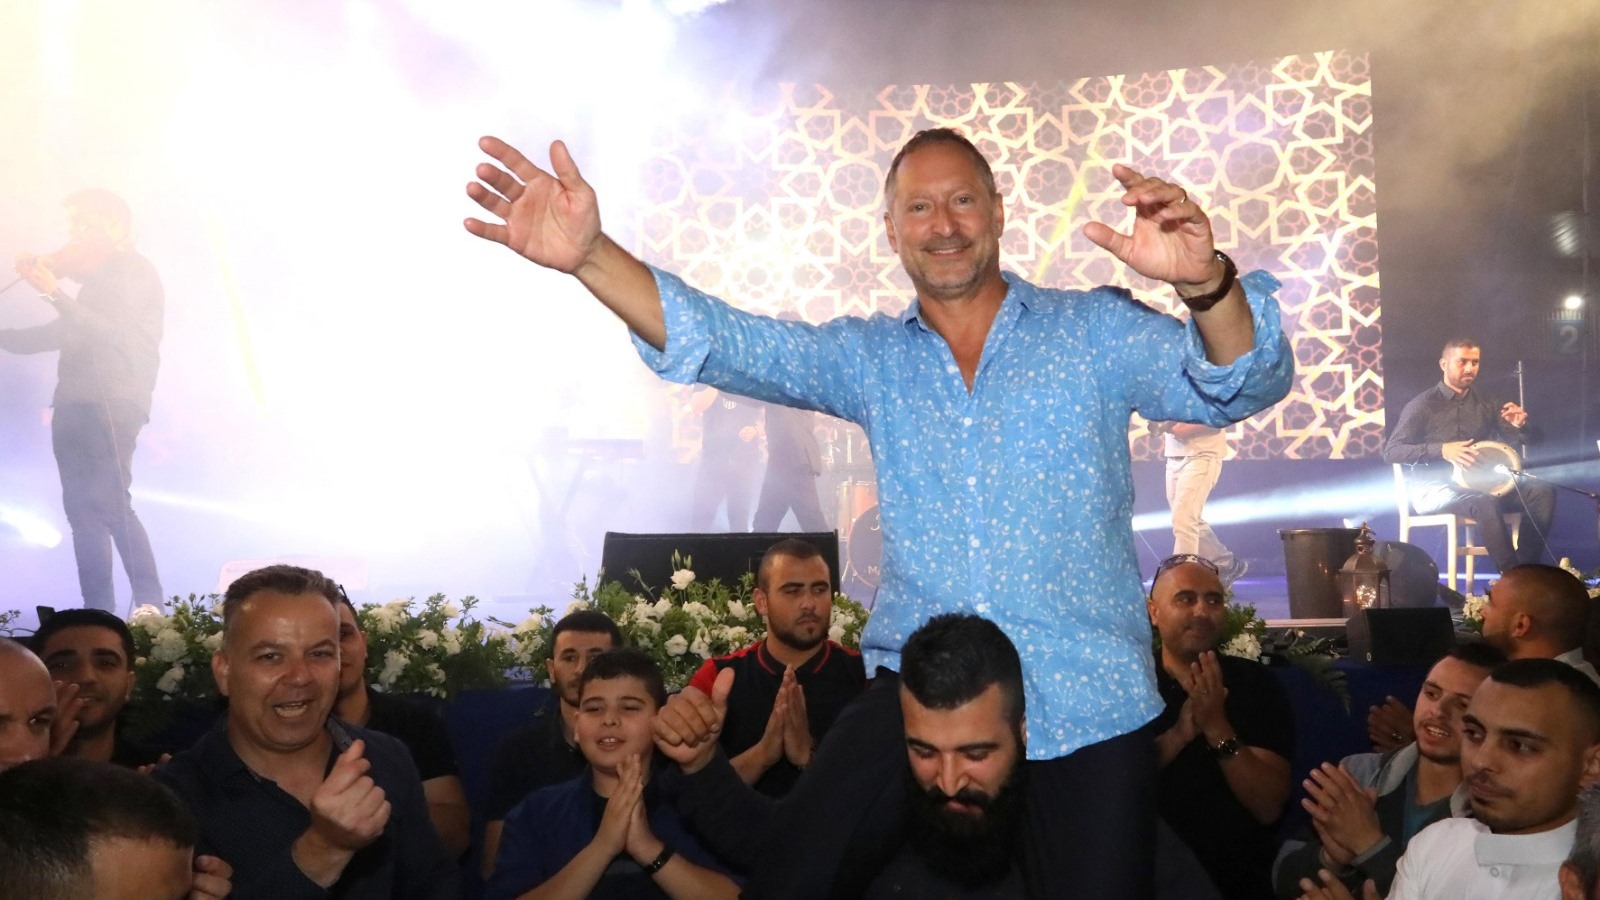 Israelis, Palestinians Share Ramadan Meal At Sodastream photo